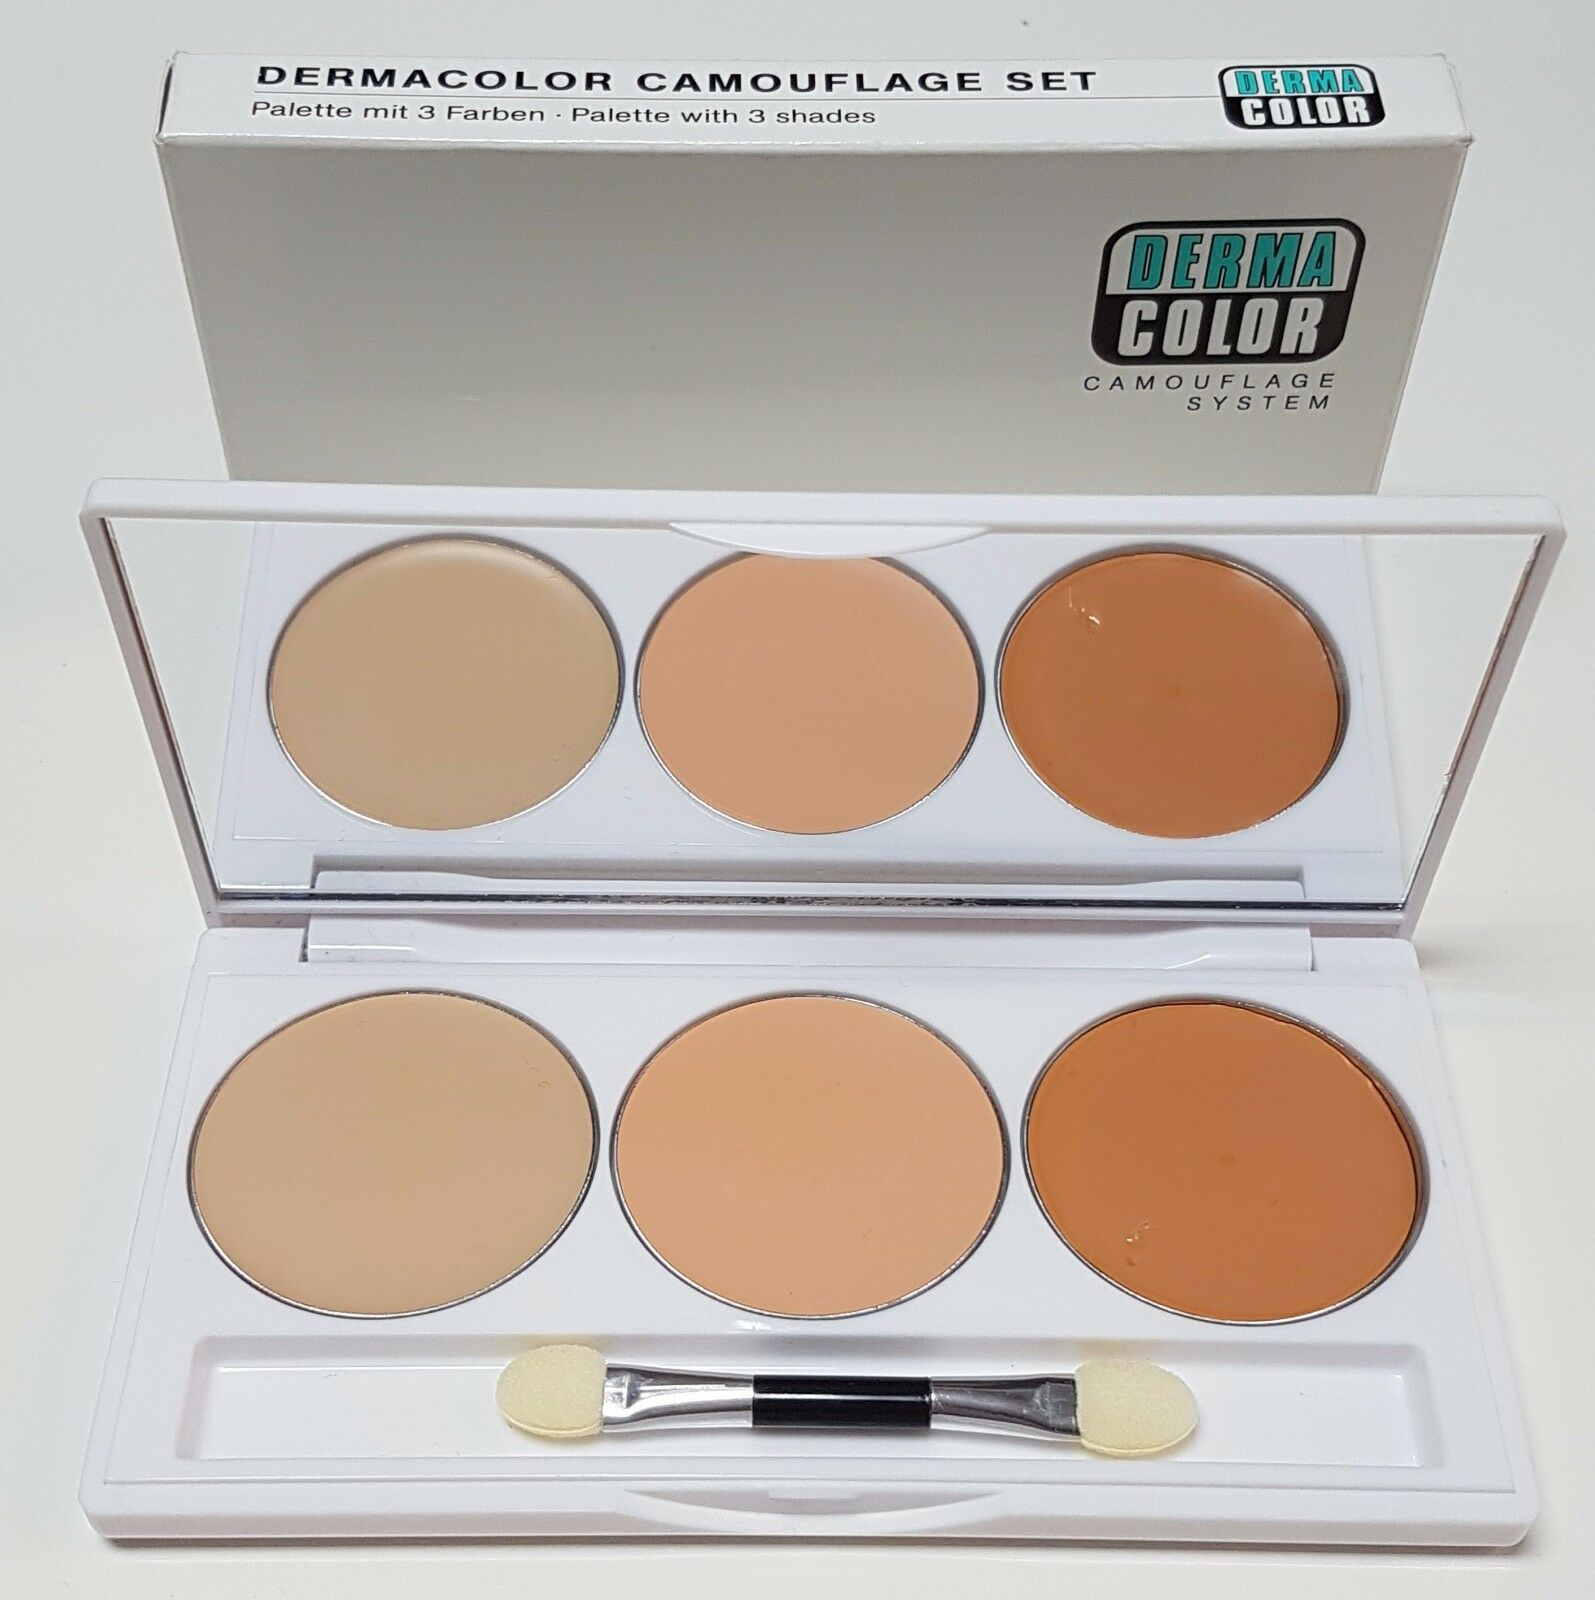 KRYOLAN DERMACOLOR 3 Colour Camouflage Set